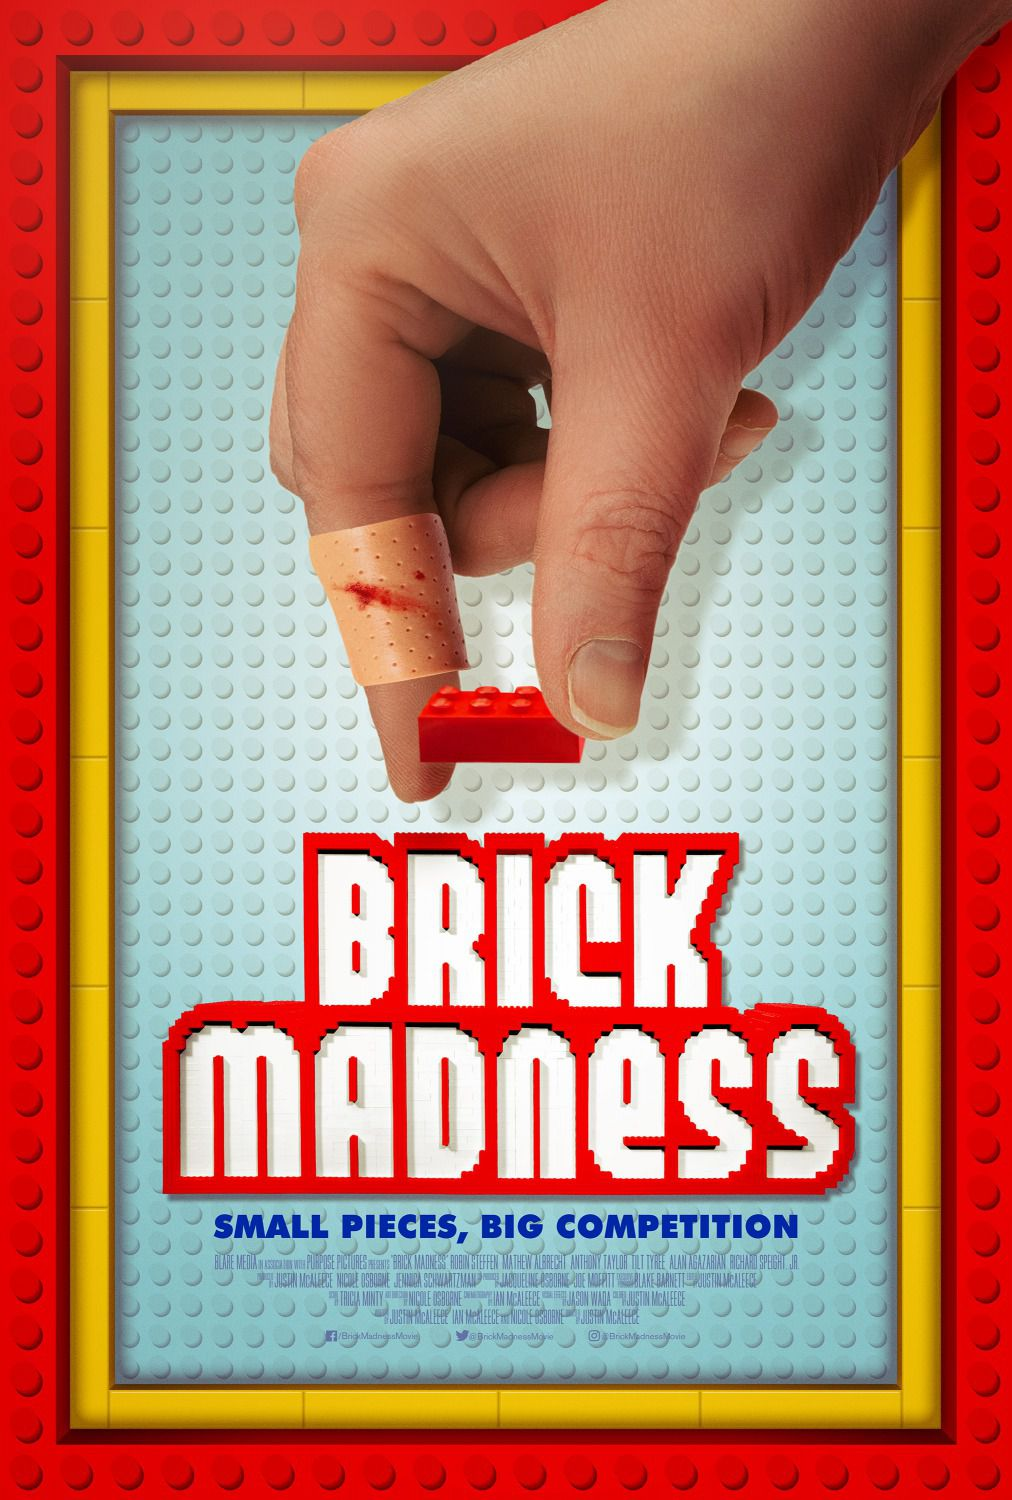 Brick Madness - Small Pieces Big Competition - film poster